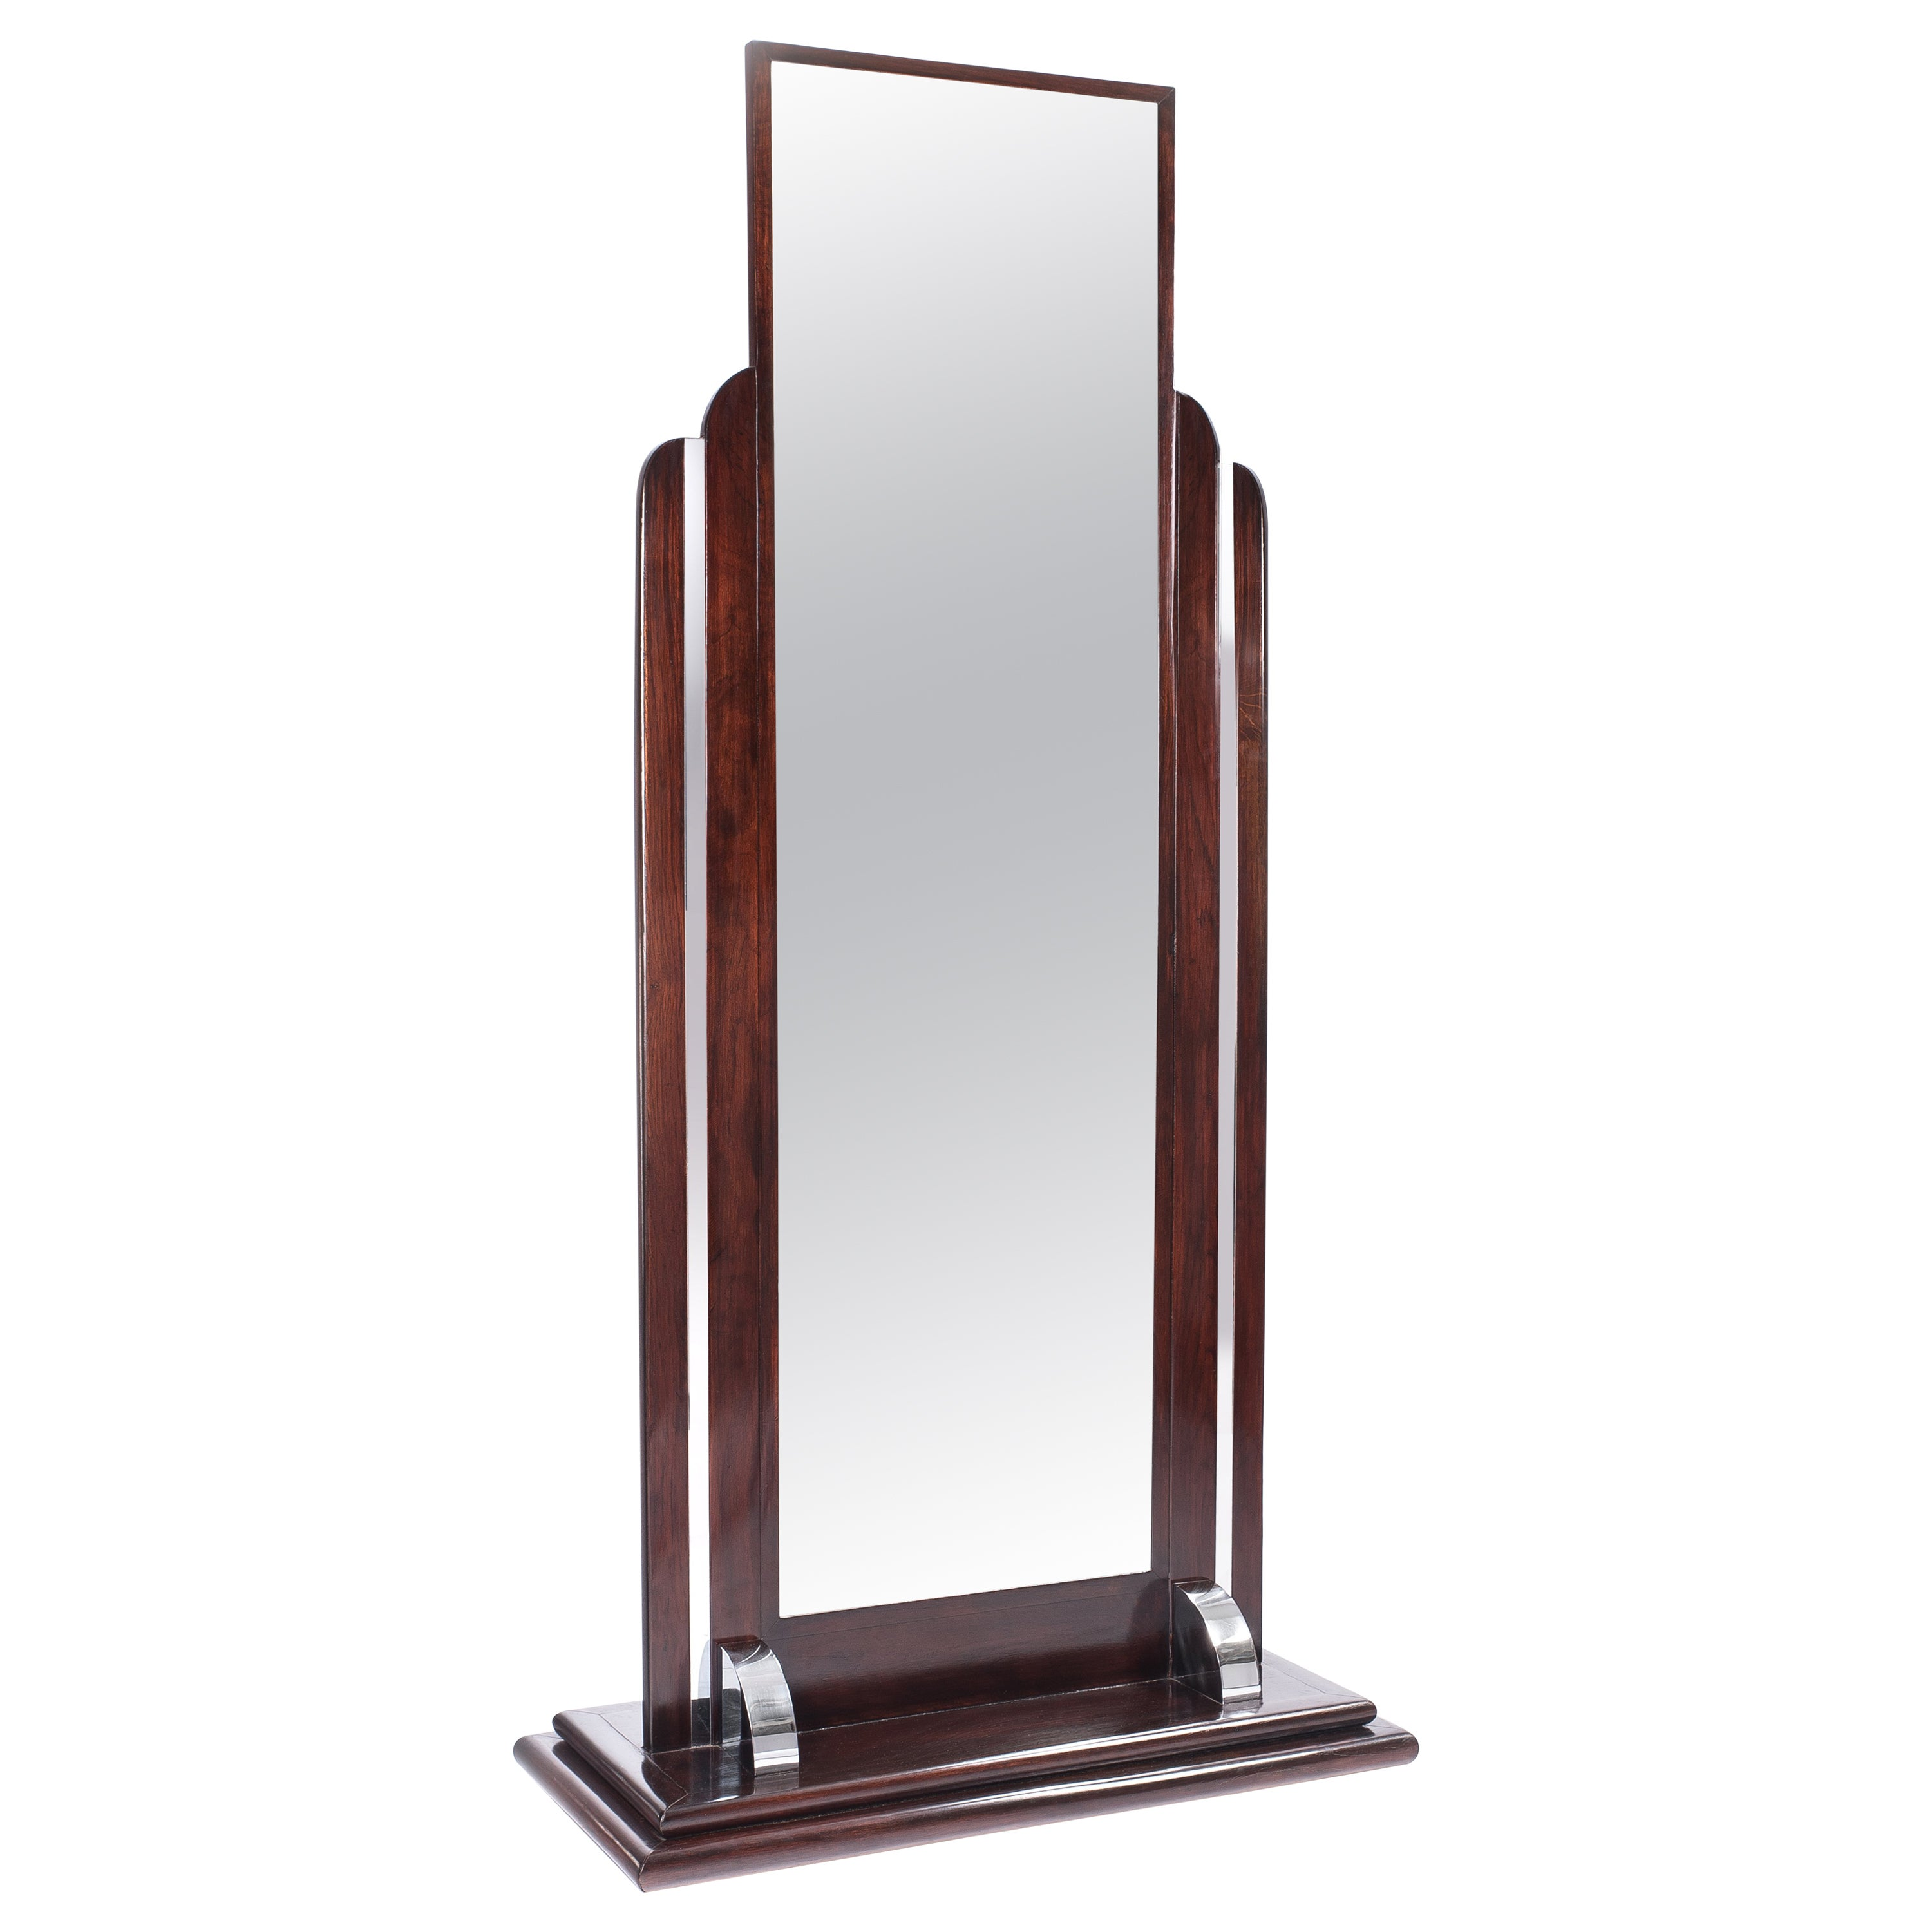 Standing Mirror Art Deco Standing Mirror From France 1930s